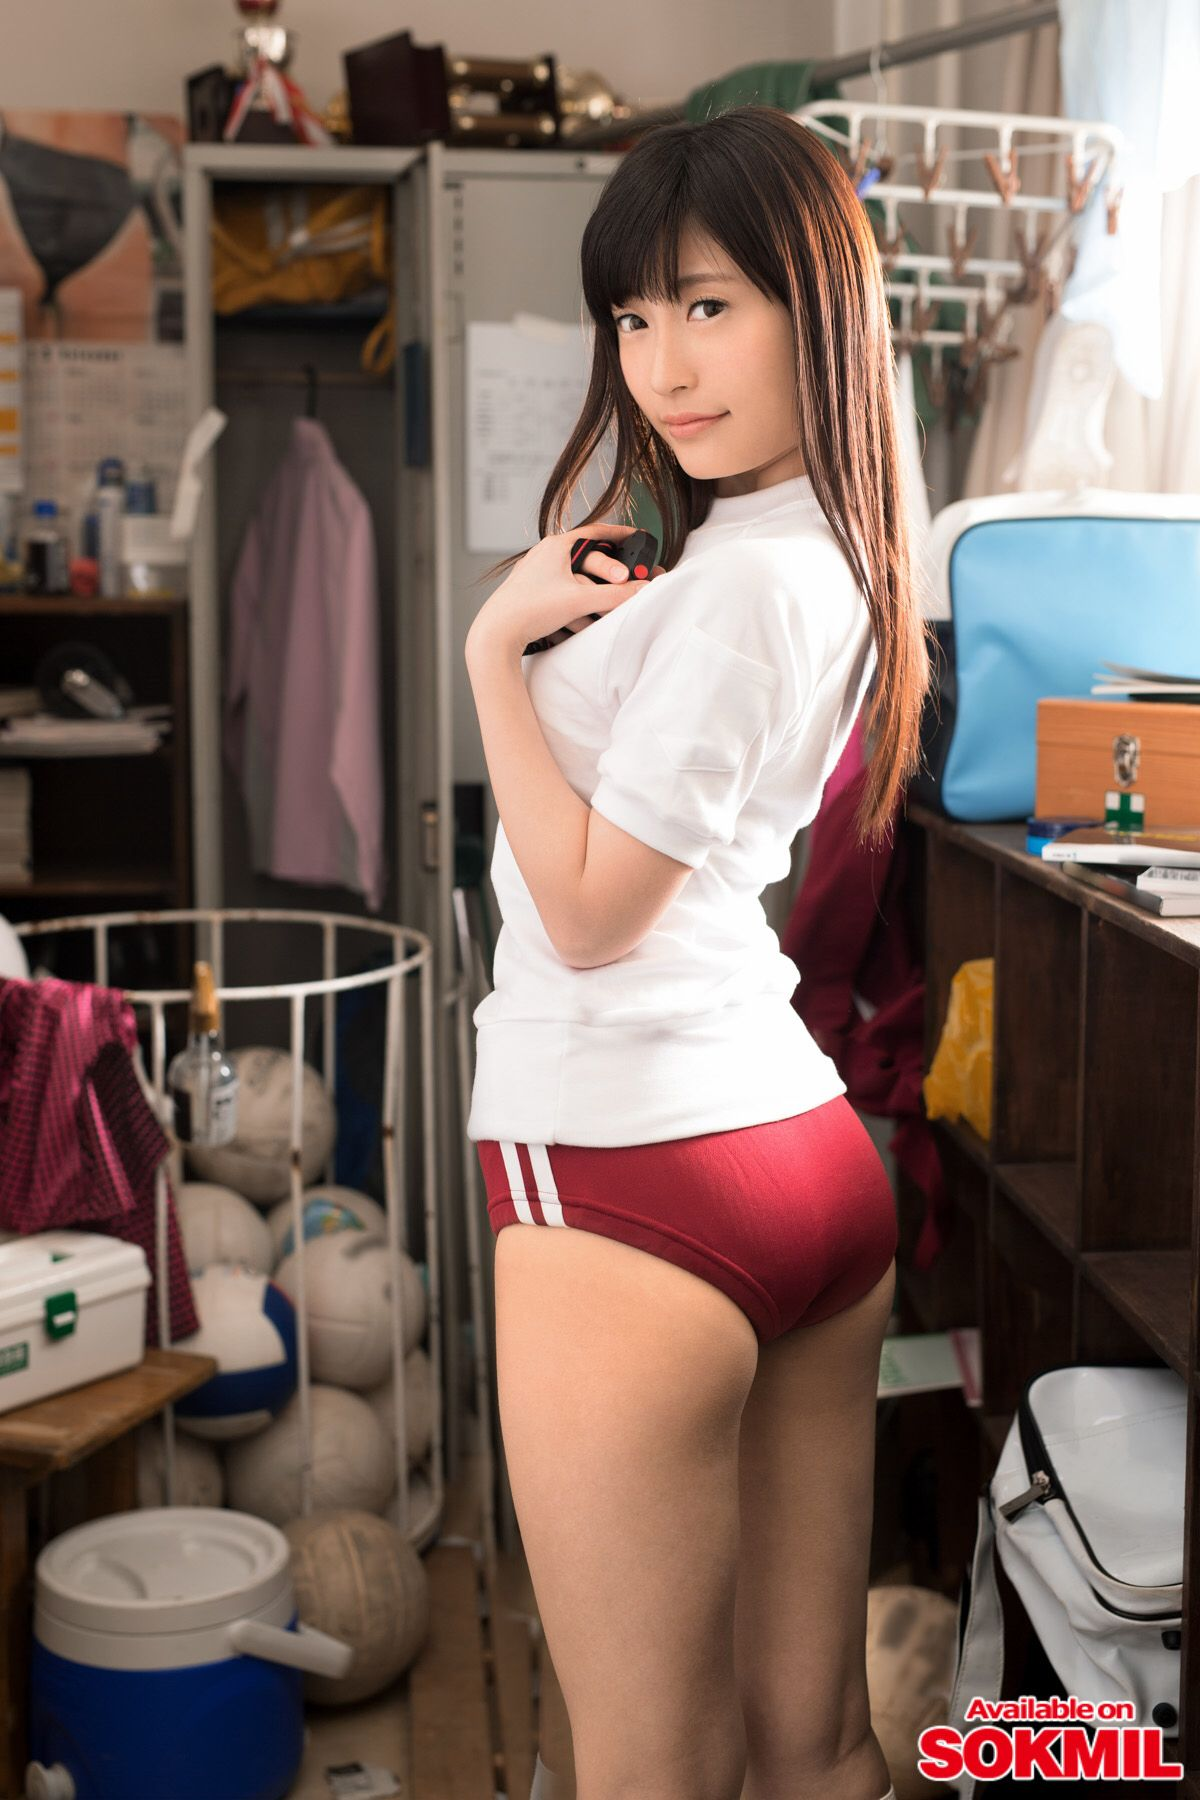 Asian girls in bloomers